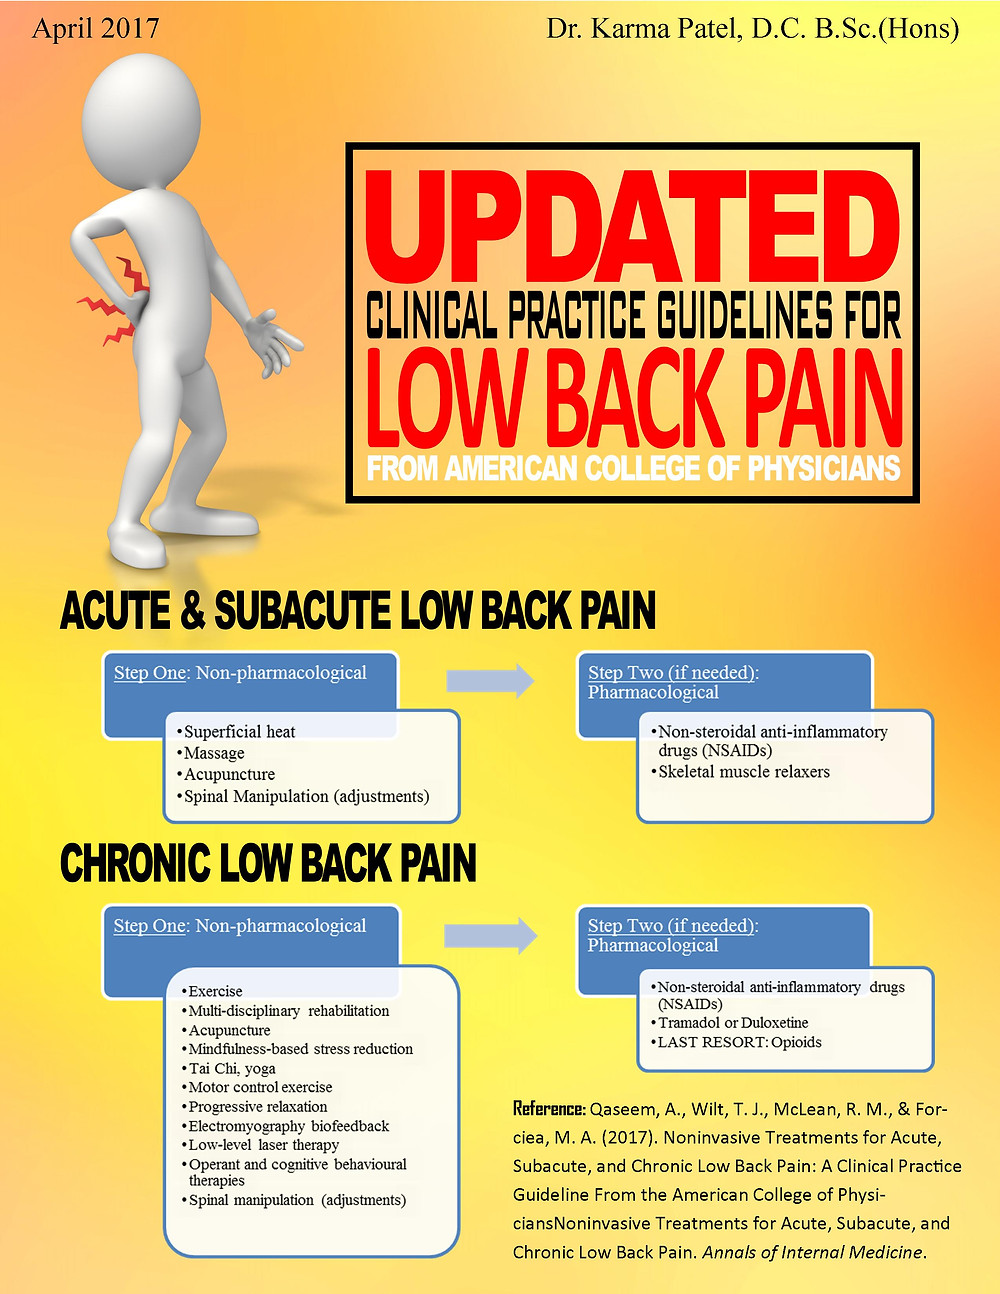 Updated Clinical Practice Guidelines for Low Back Pain